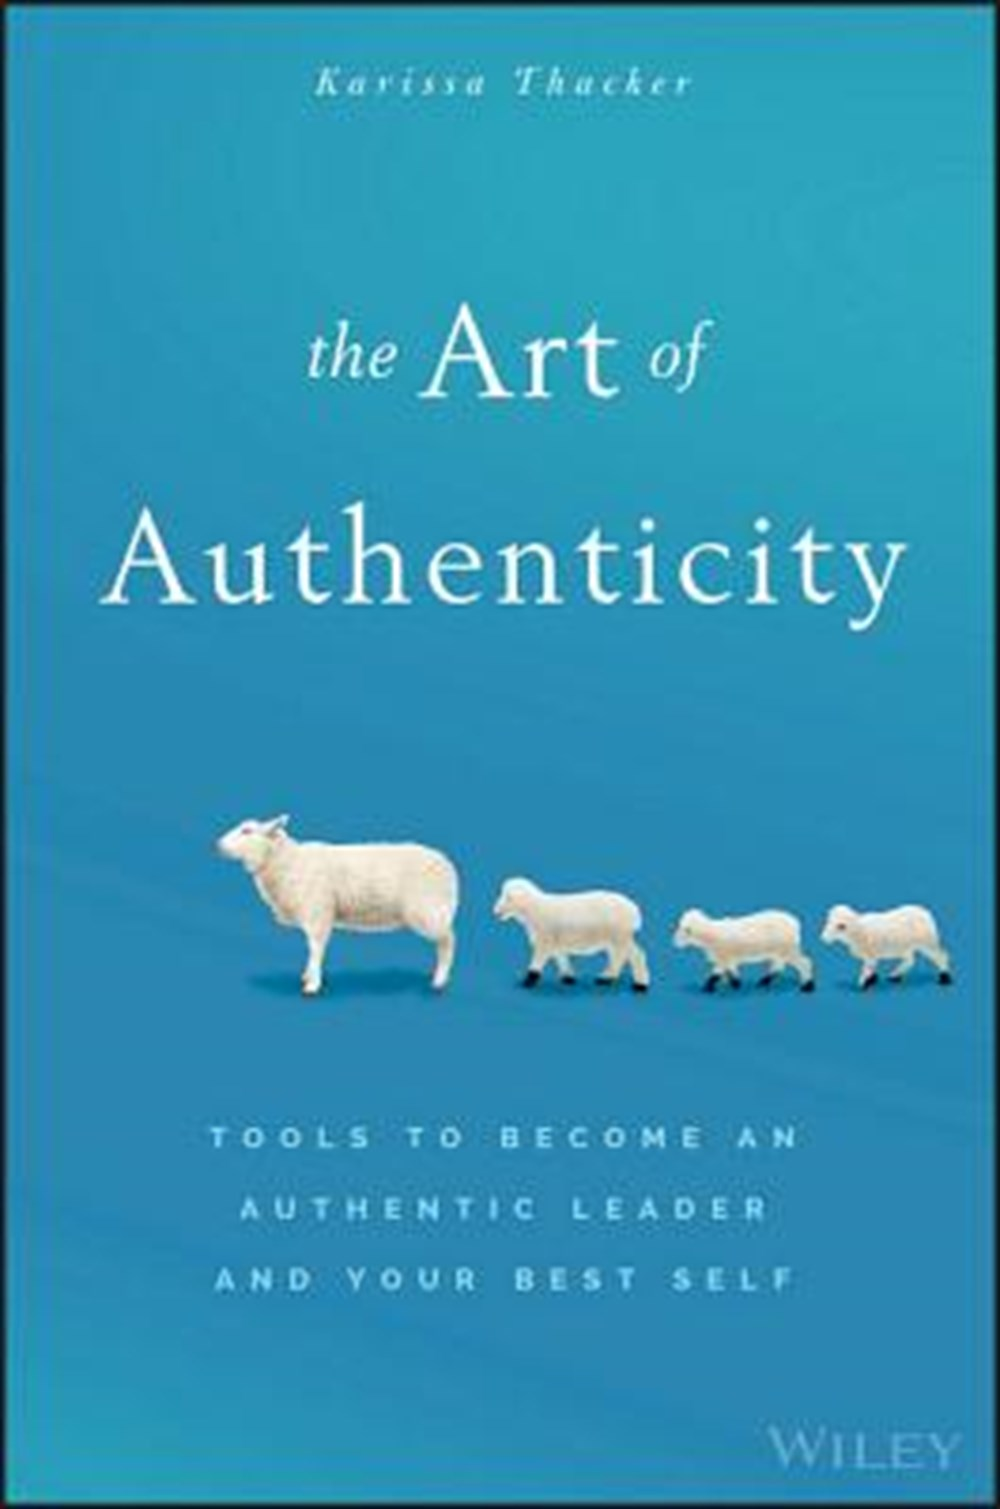 Art of Authenticity Tools to Become an Authentic Leader and Your Best Self